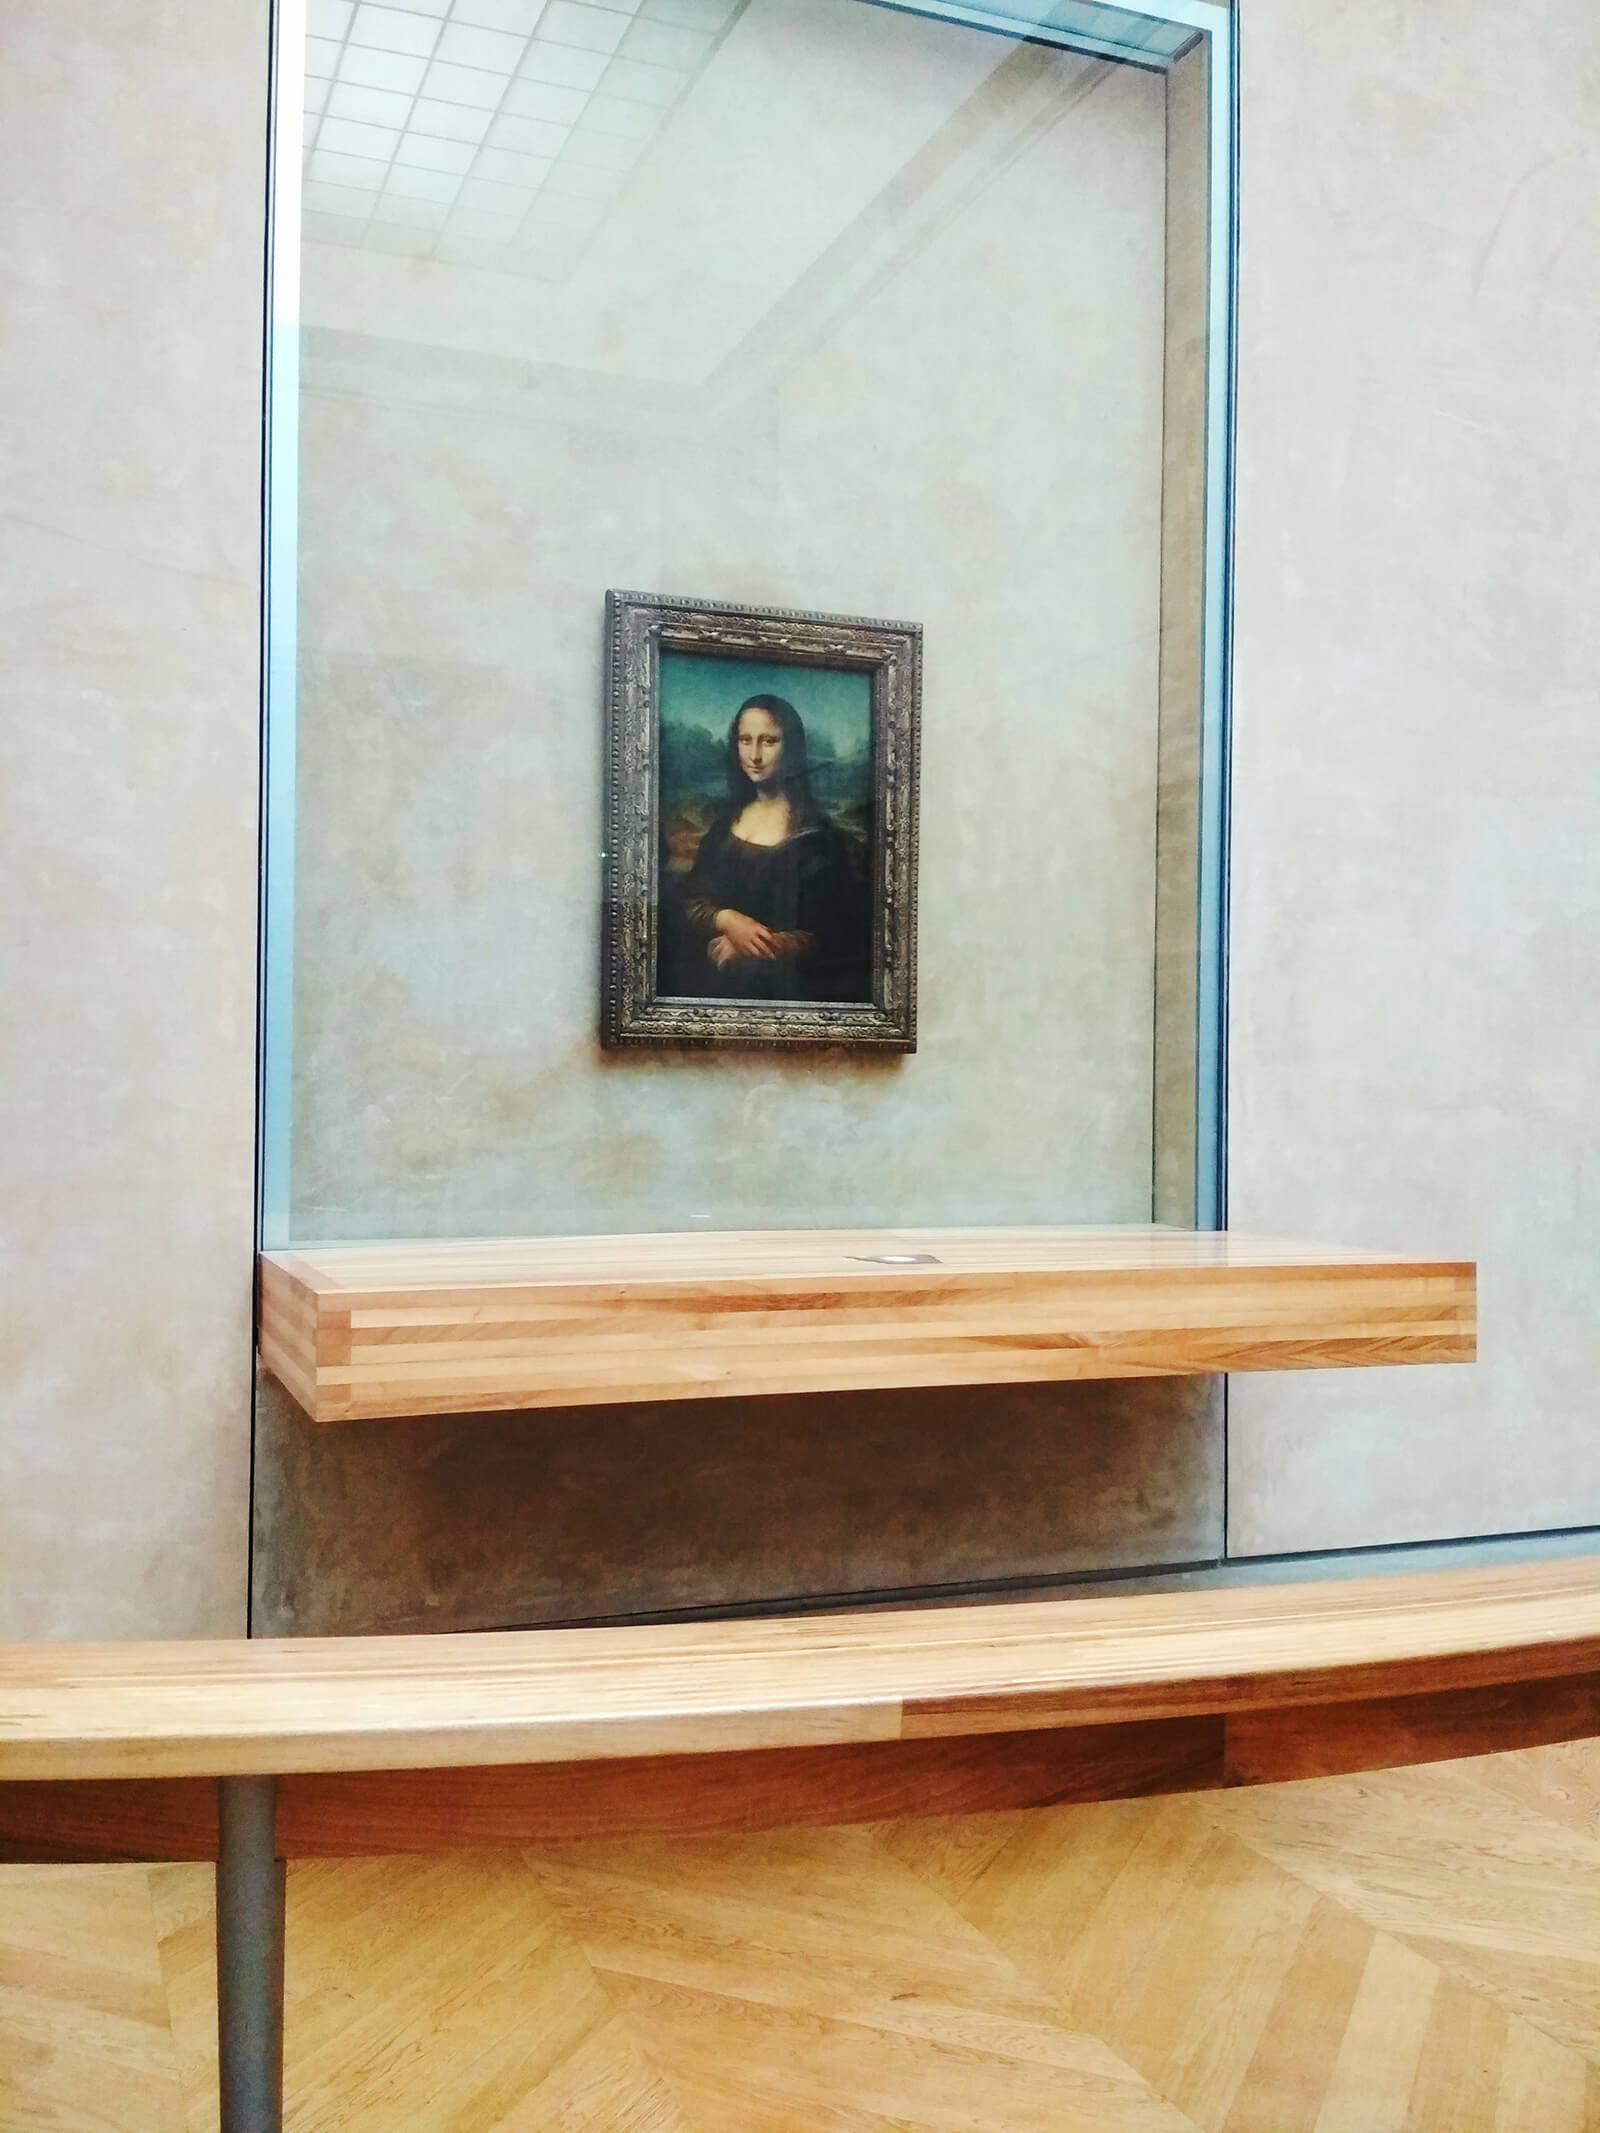 Mona Lisa is one of the most vandalised and protected works of art at the Louvre in Paris | STIRworld